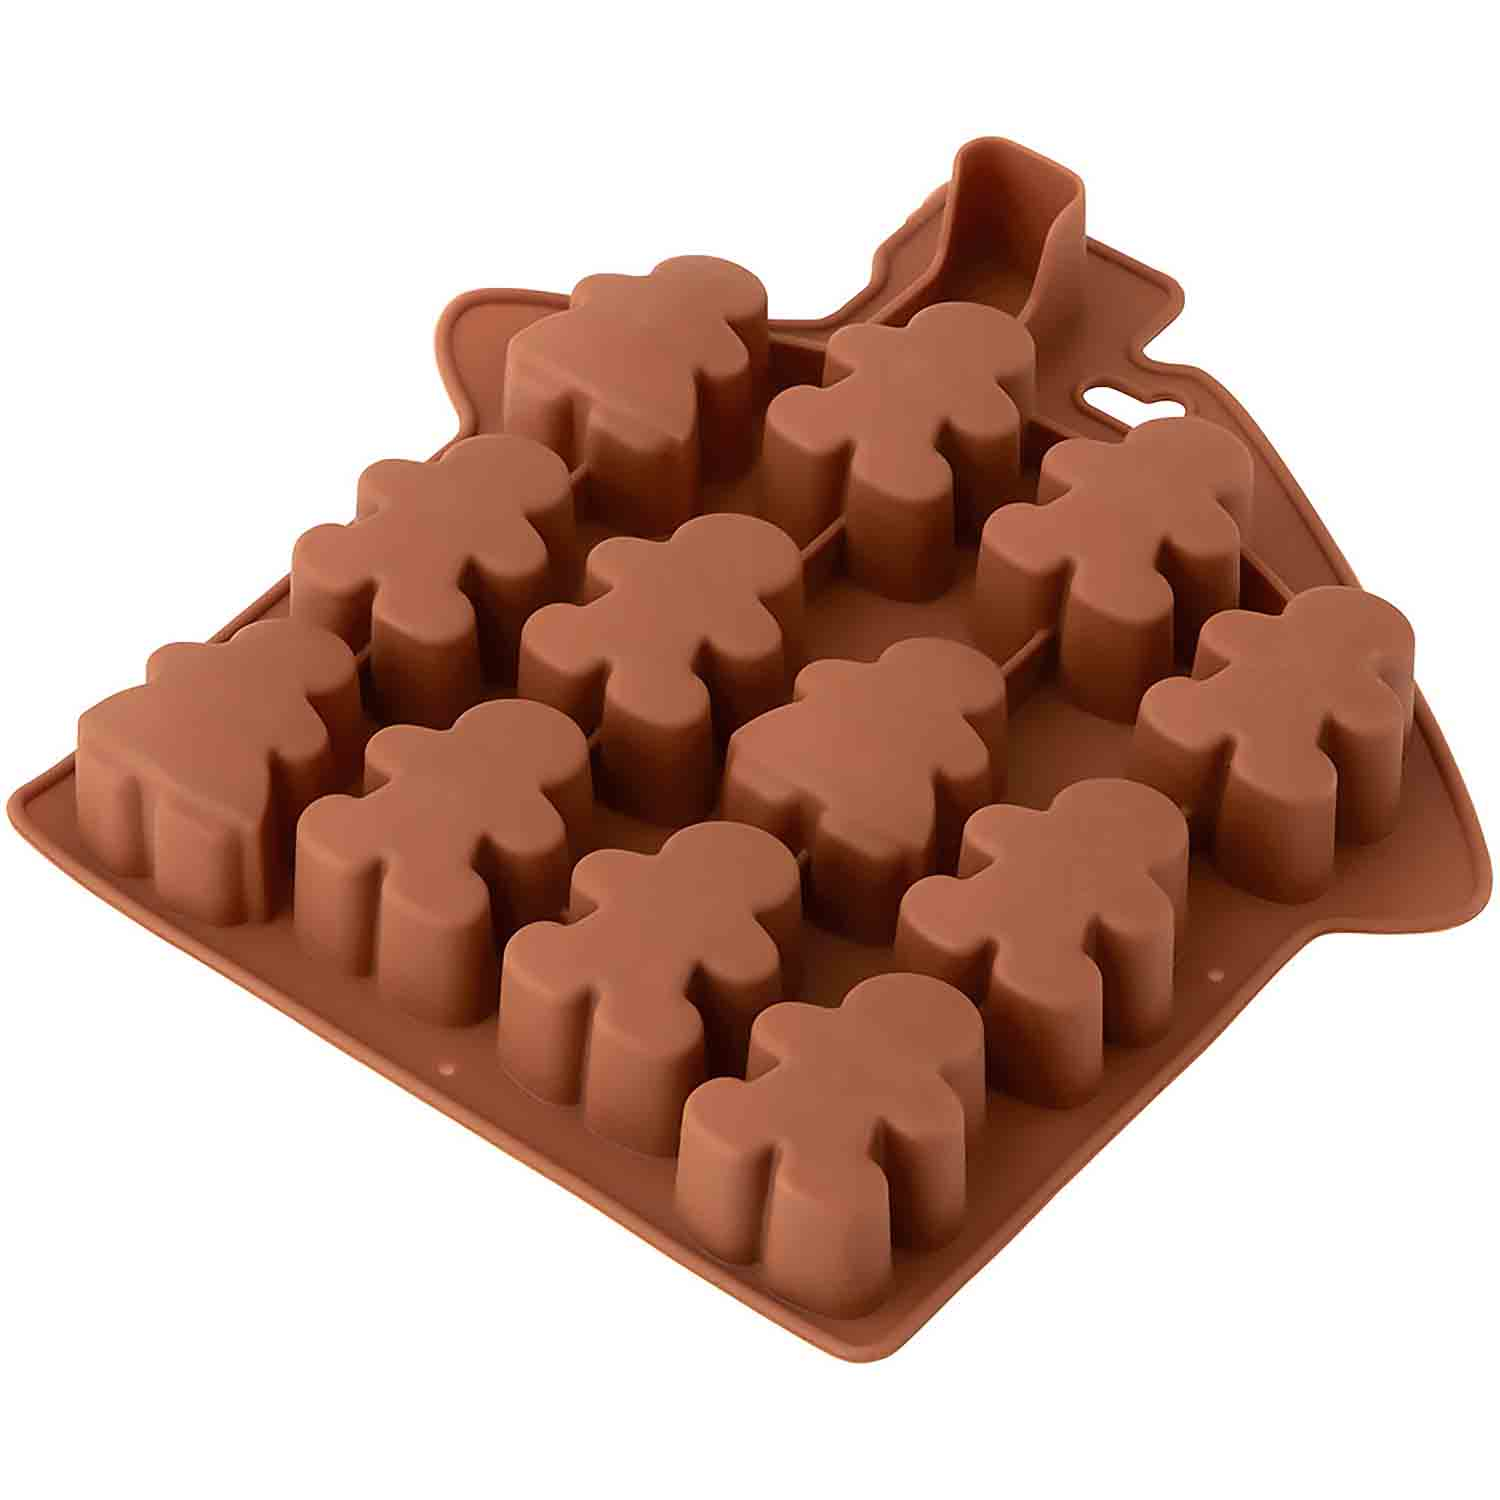 Gingerbread Bite-Size Silicone Mold